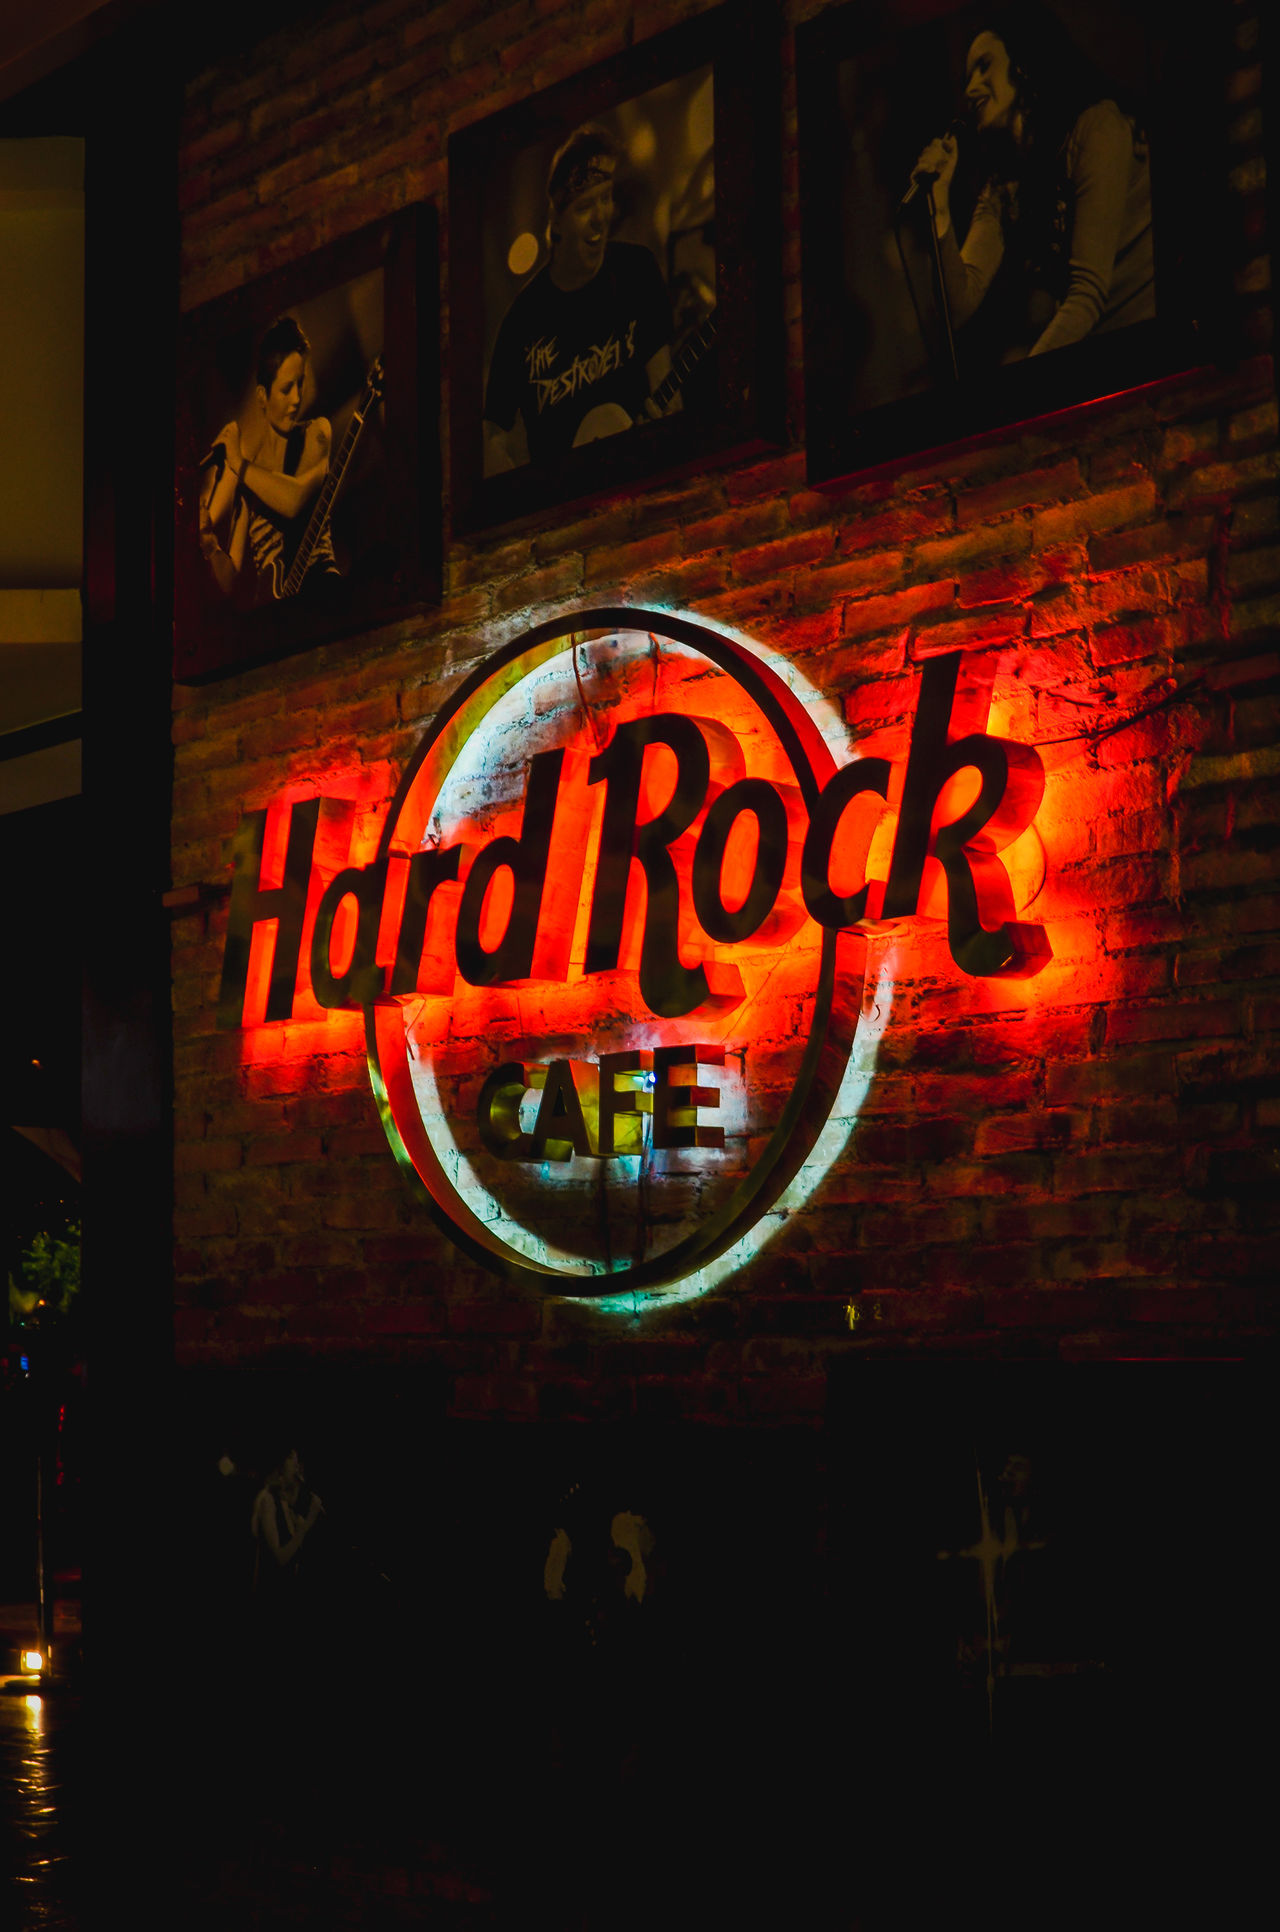 Light sign of hard rock cafe in caracas - Caracas, Venezuela Brand Bricks Built Structure Cafe Caracas City Close-up Famous Famous Place Franchise Hard Rock Hard Rock Cafe Illuminated Indoors  Label Lights Neon Night Open Sign Restaurant Rock Sing Singers Text Wall